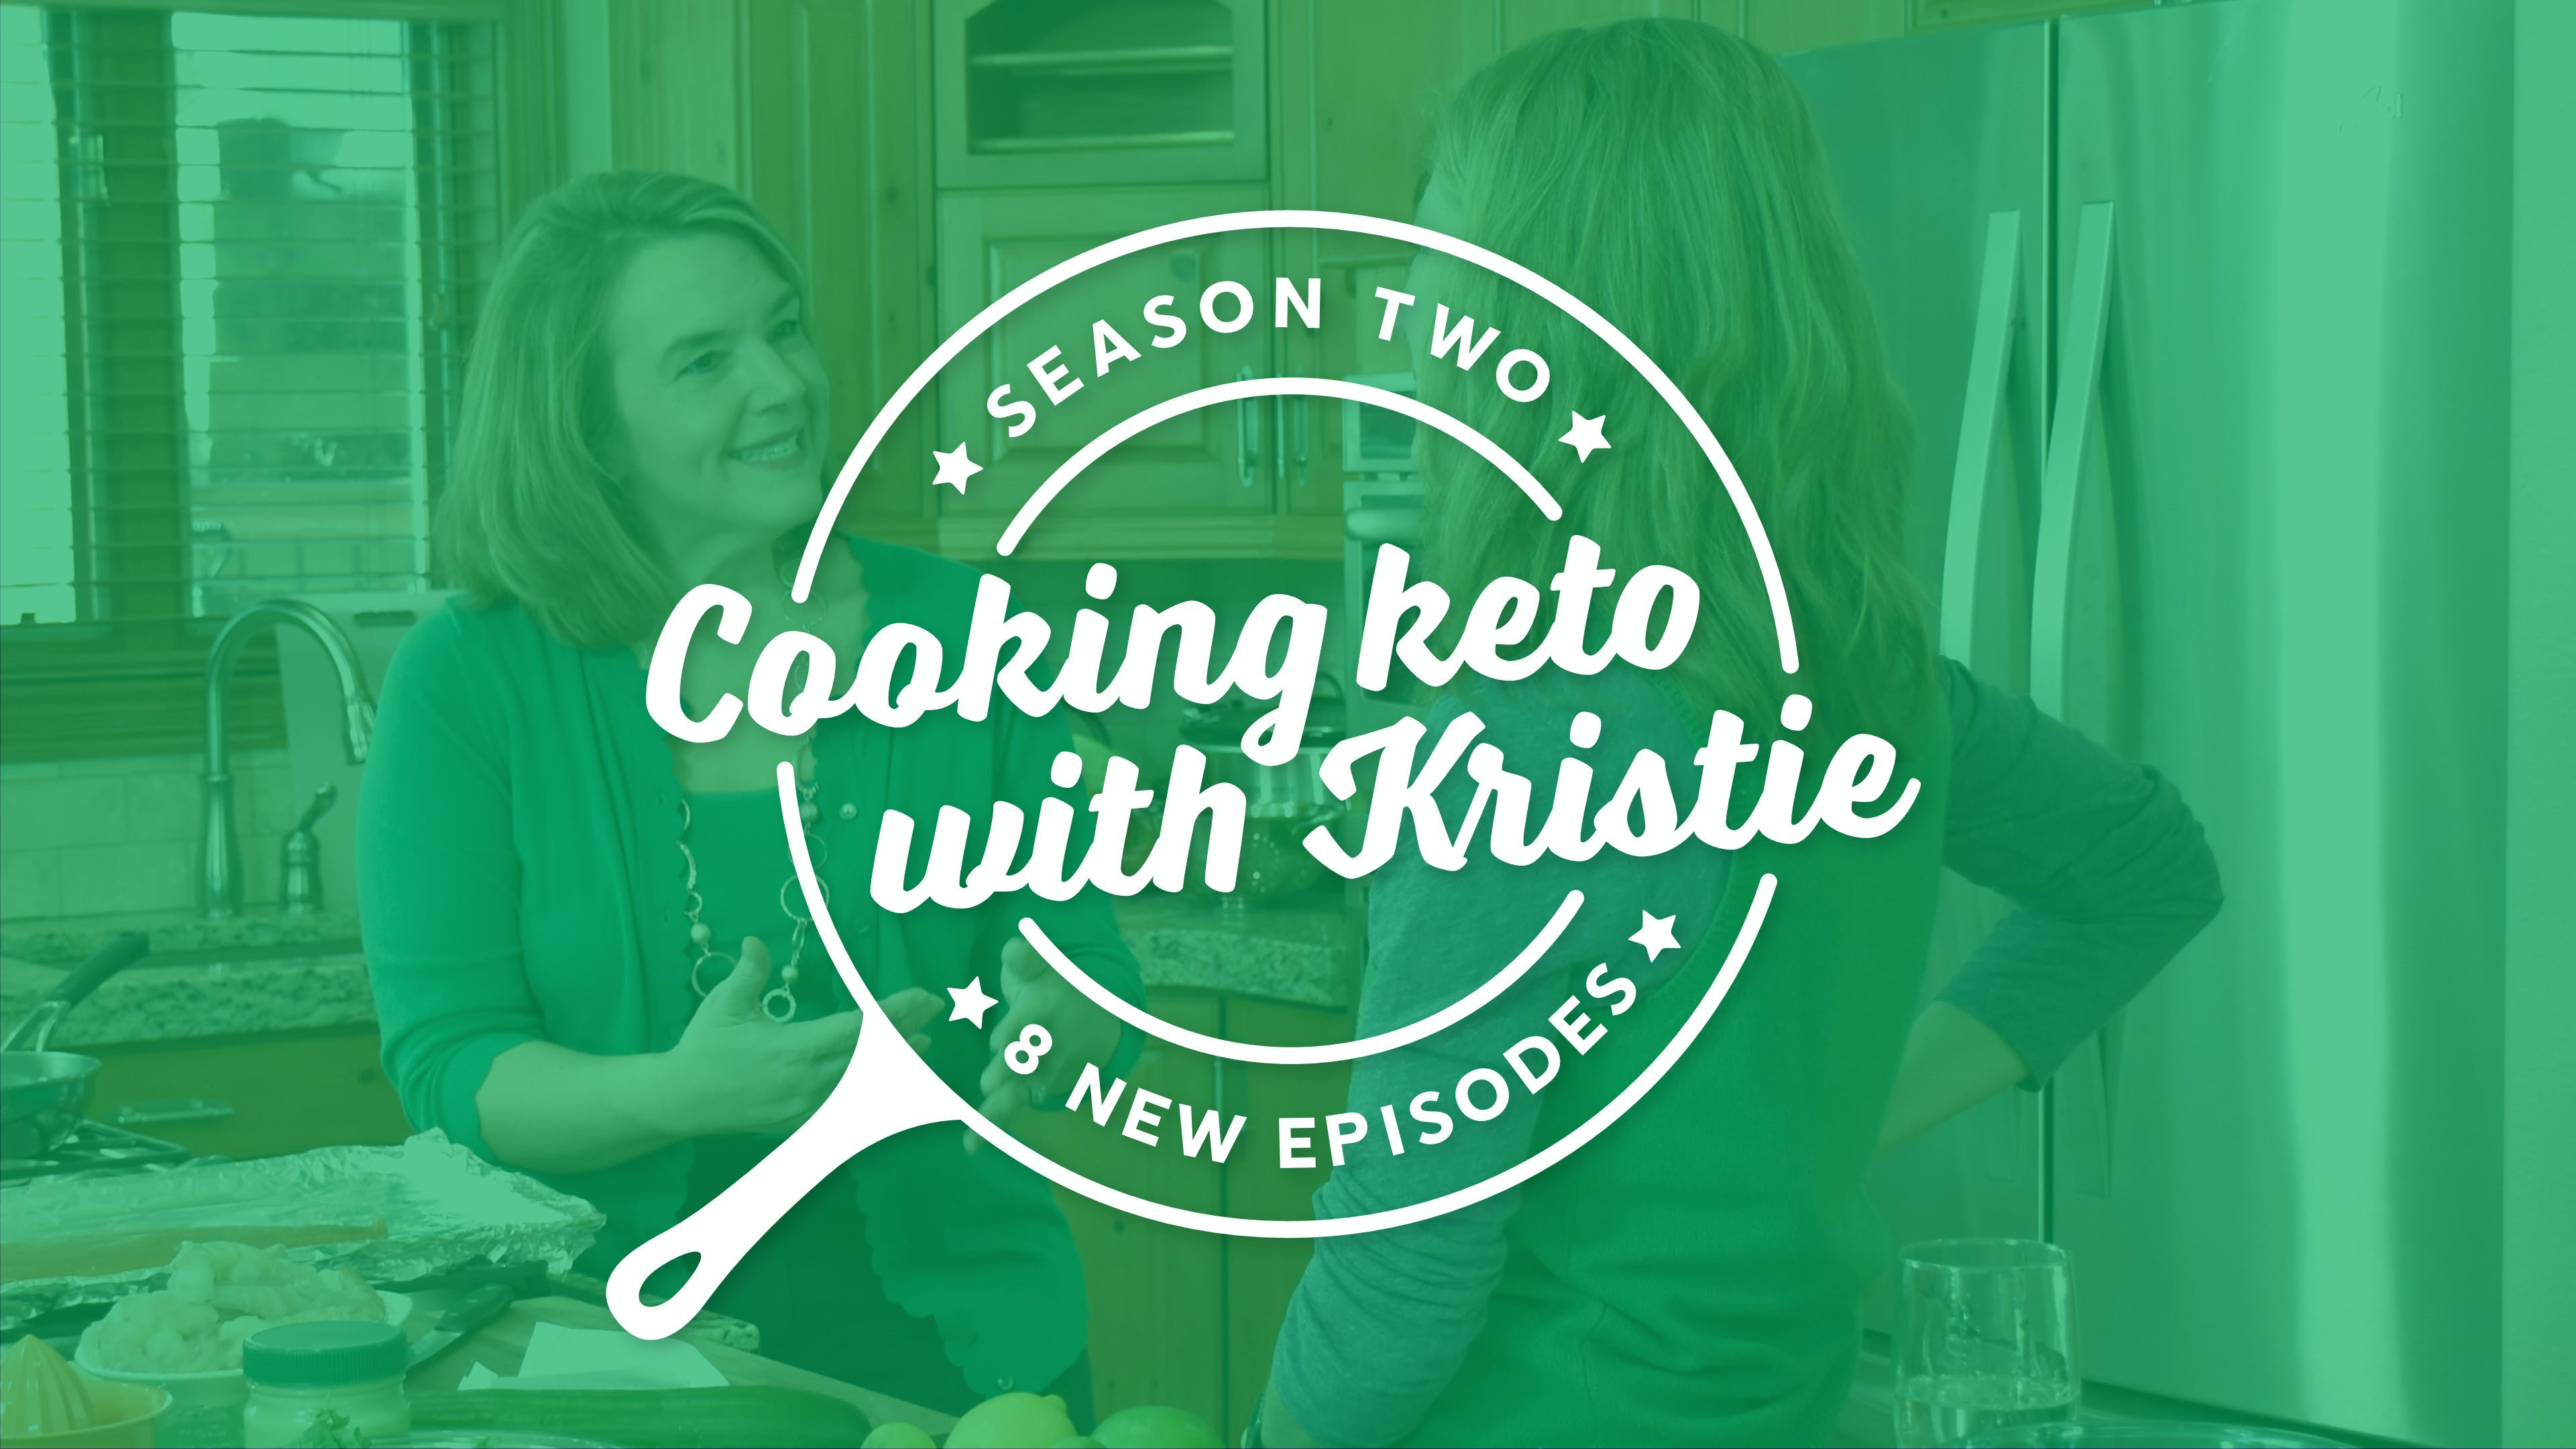 Kristie cooking keto with Dr. Sarah Hallberg